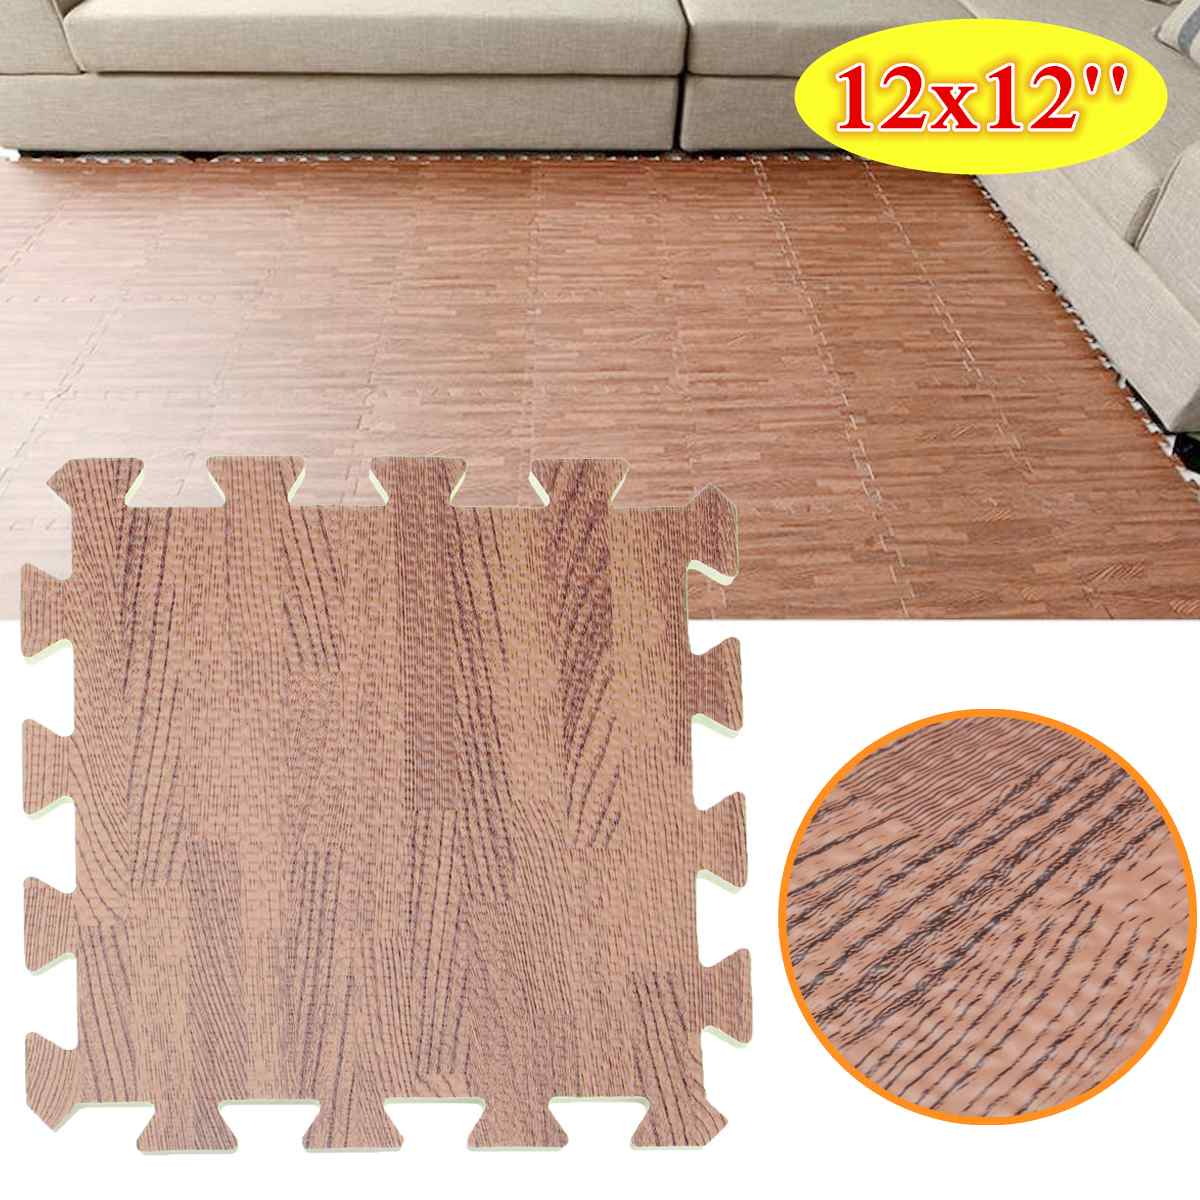 🛒 [HOT SALE] | ❤ 1 Pc 31x31x1 cm EVA Mousse Brun Facile De ...